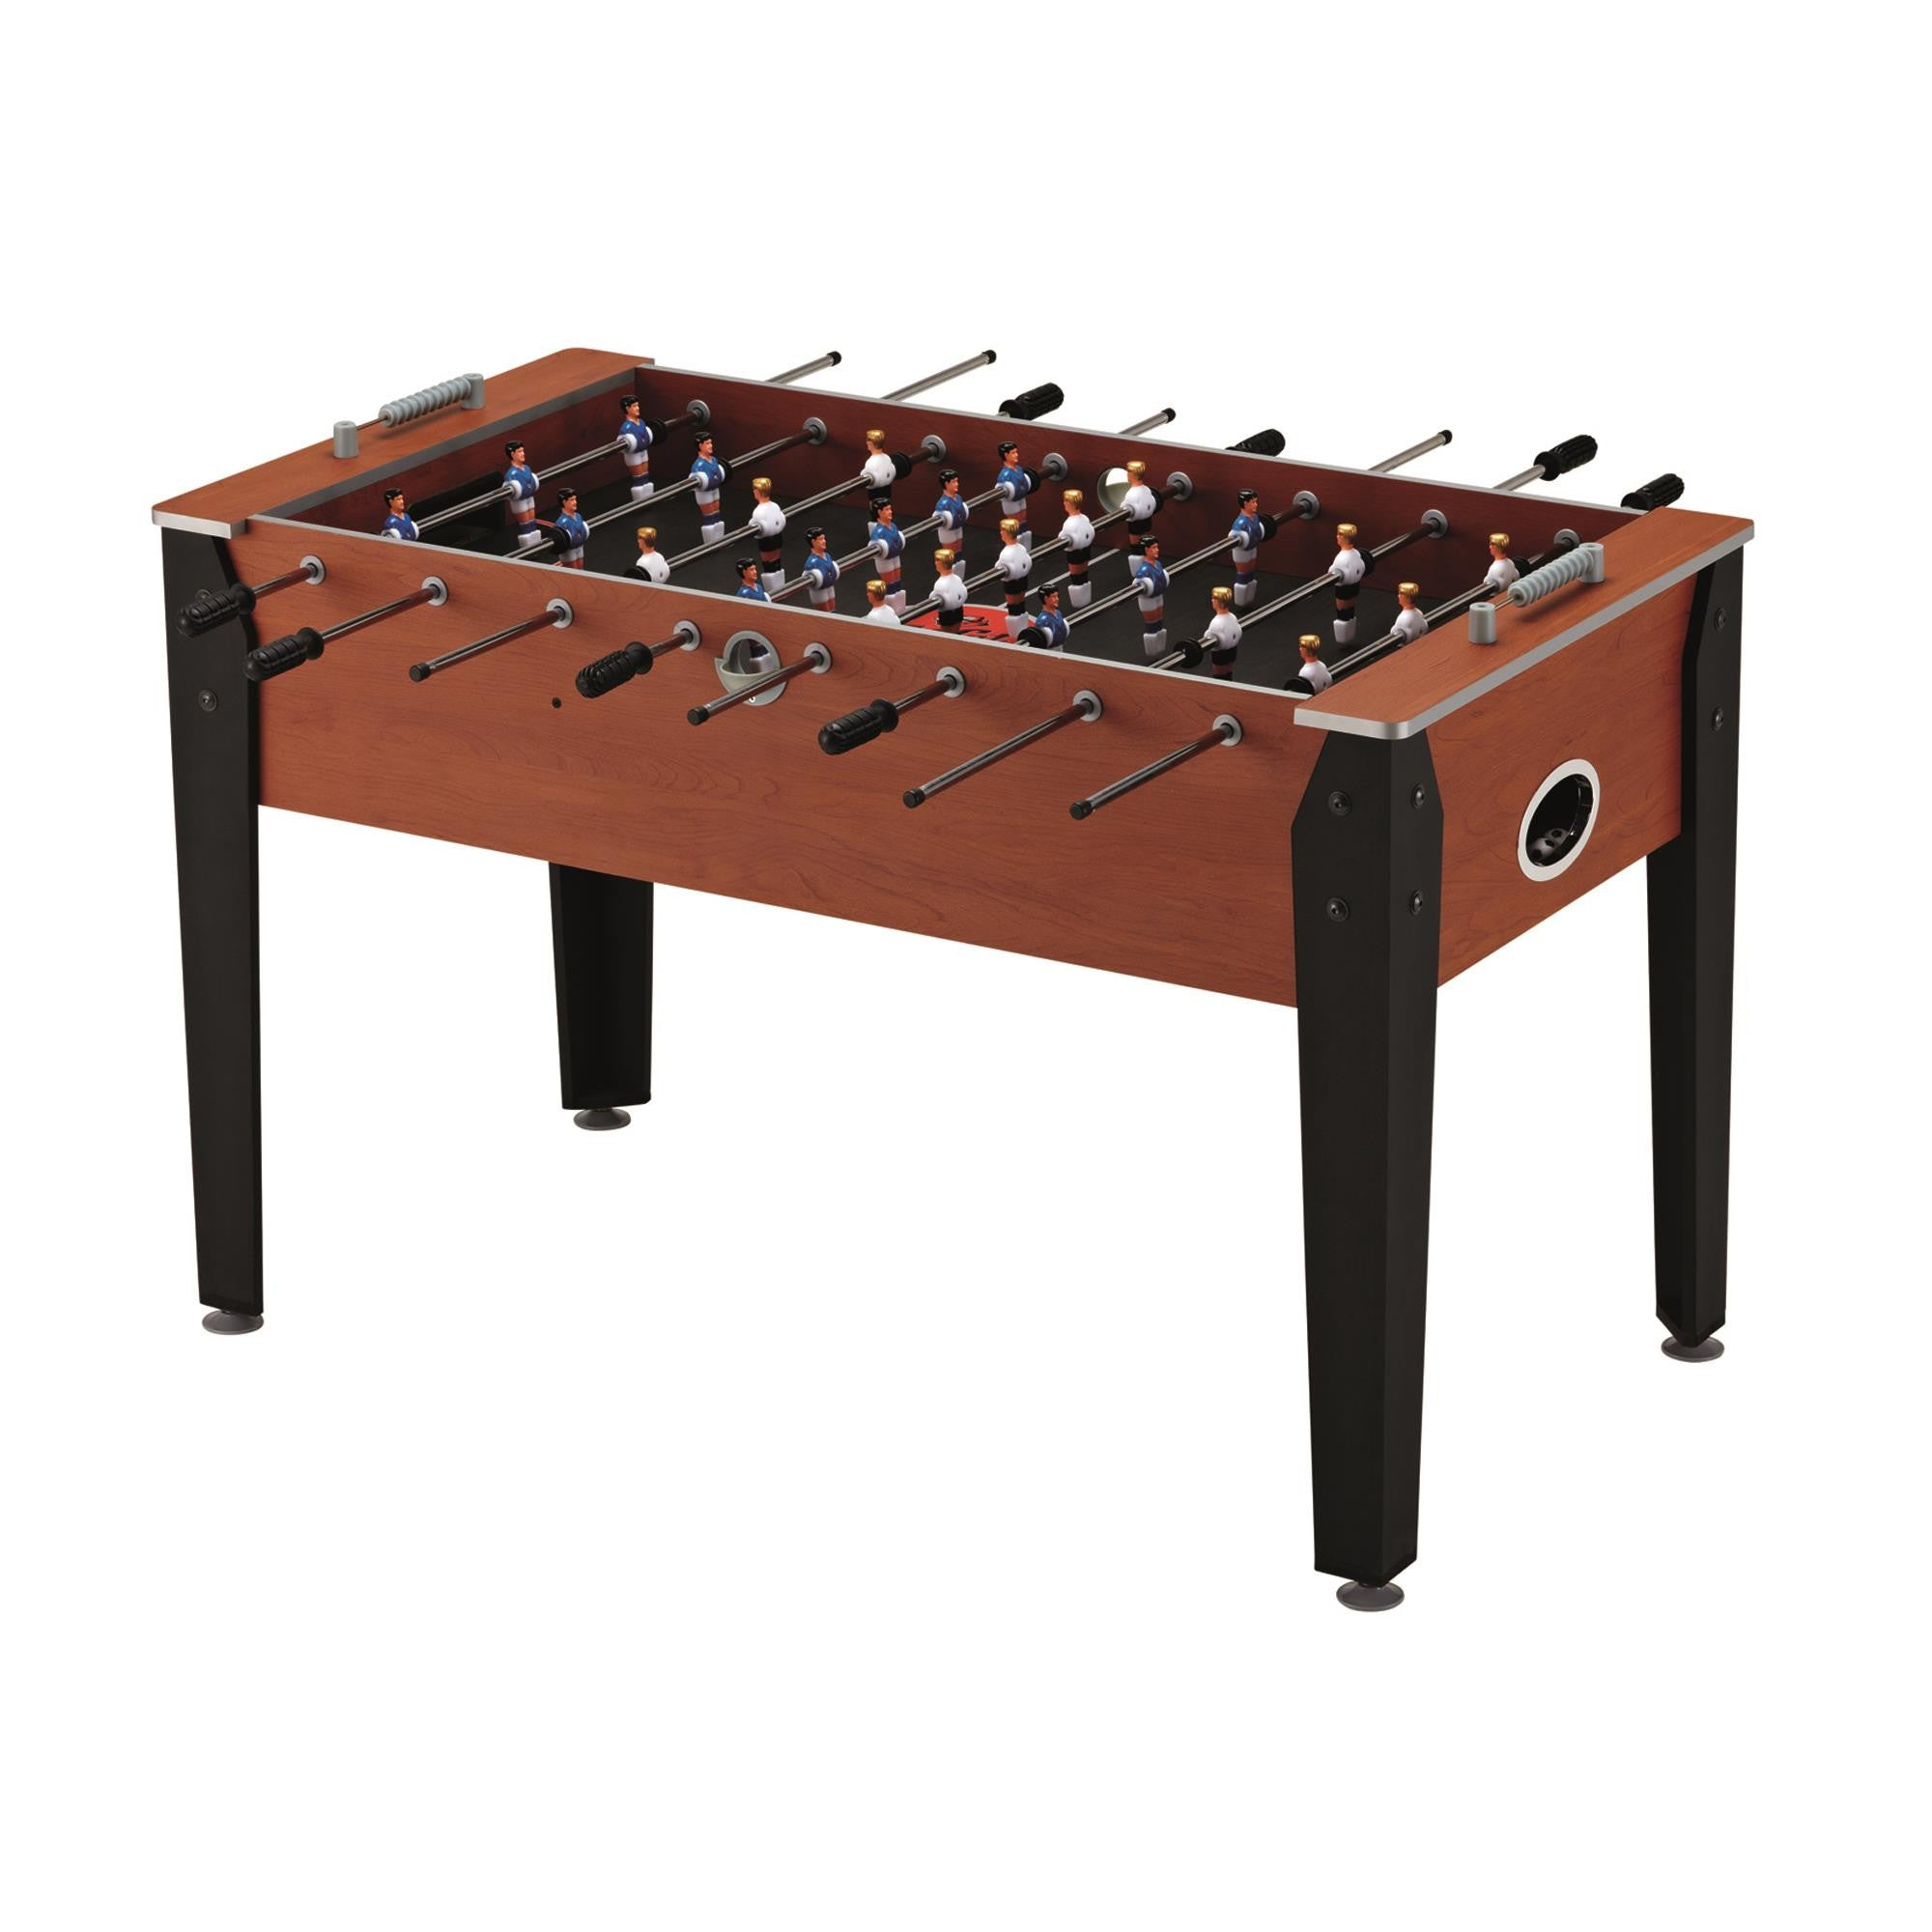 Charmant Fat Cat Manchester 54 Inch Foosball Table 64  ...